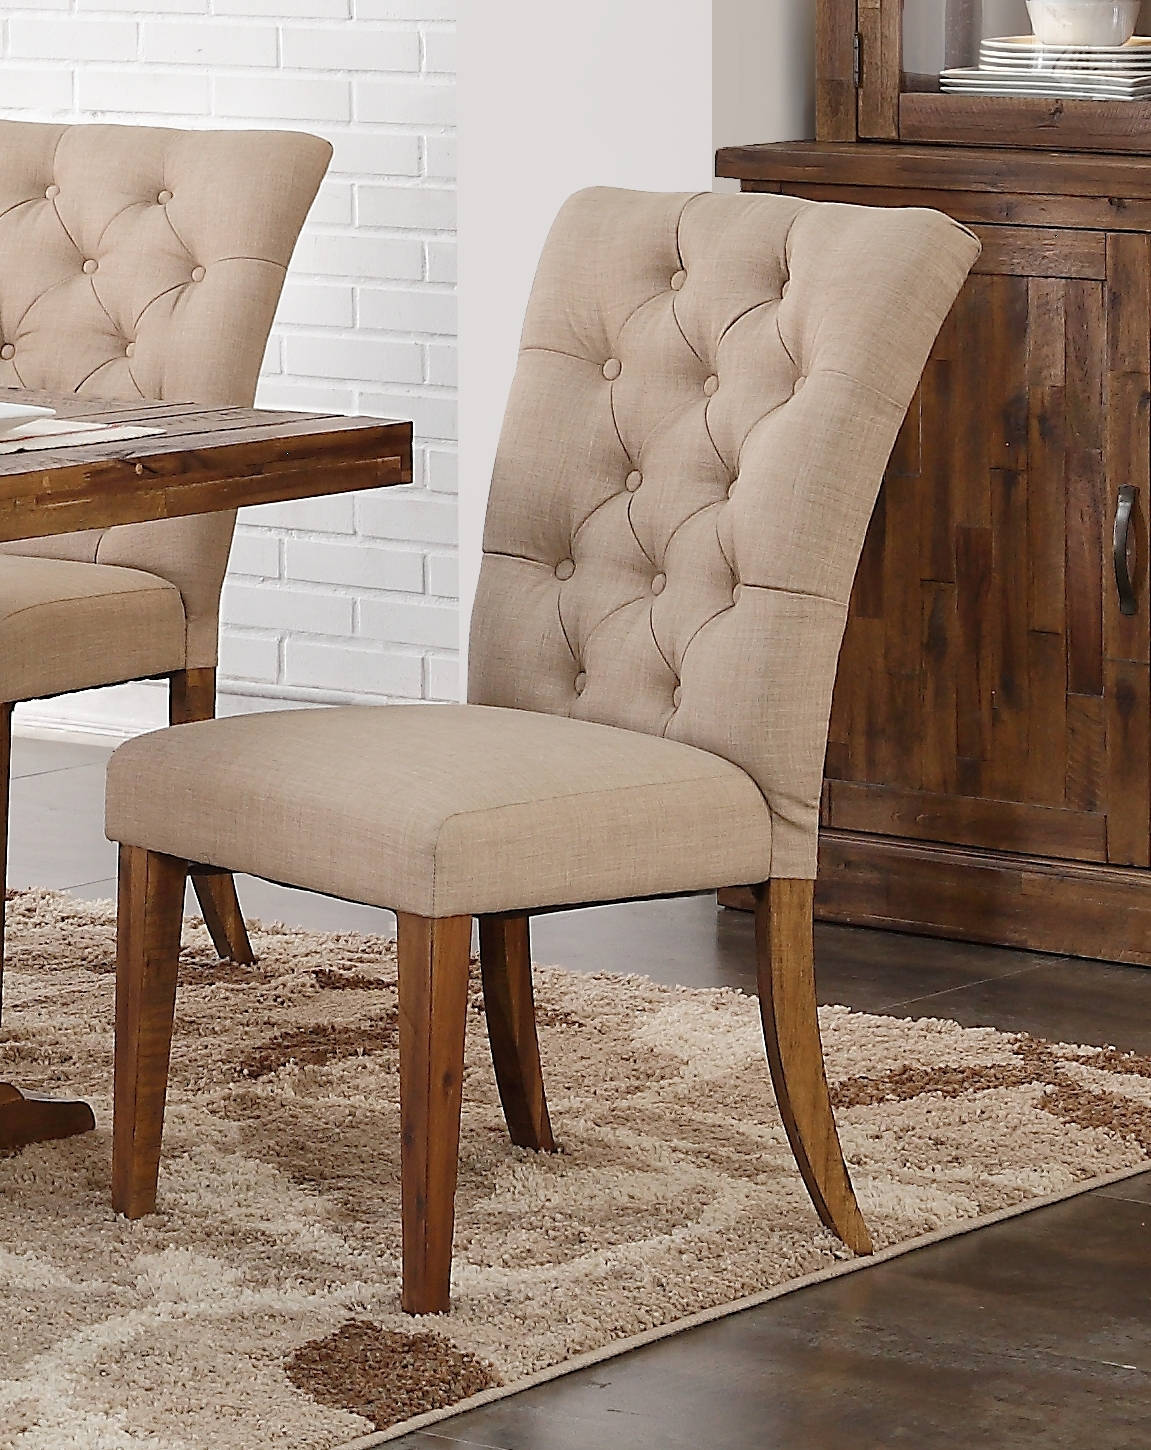 Excellent 2 New Classic Furniture Normandy Dining Chairs Squirreltailoven Fun Painted Chair Ideas Images Squirreltailovenorg